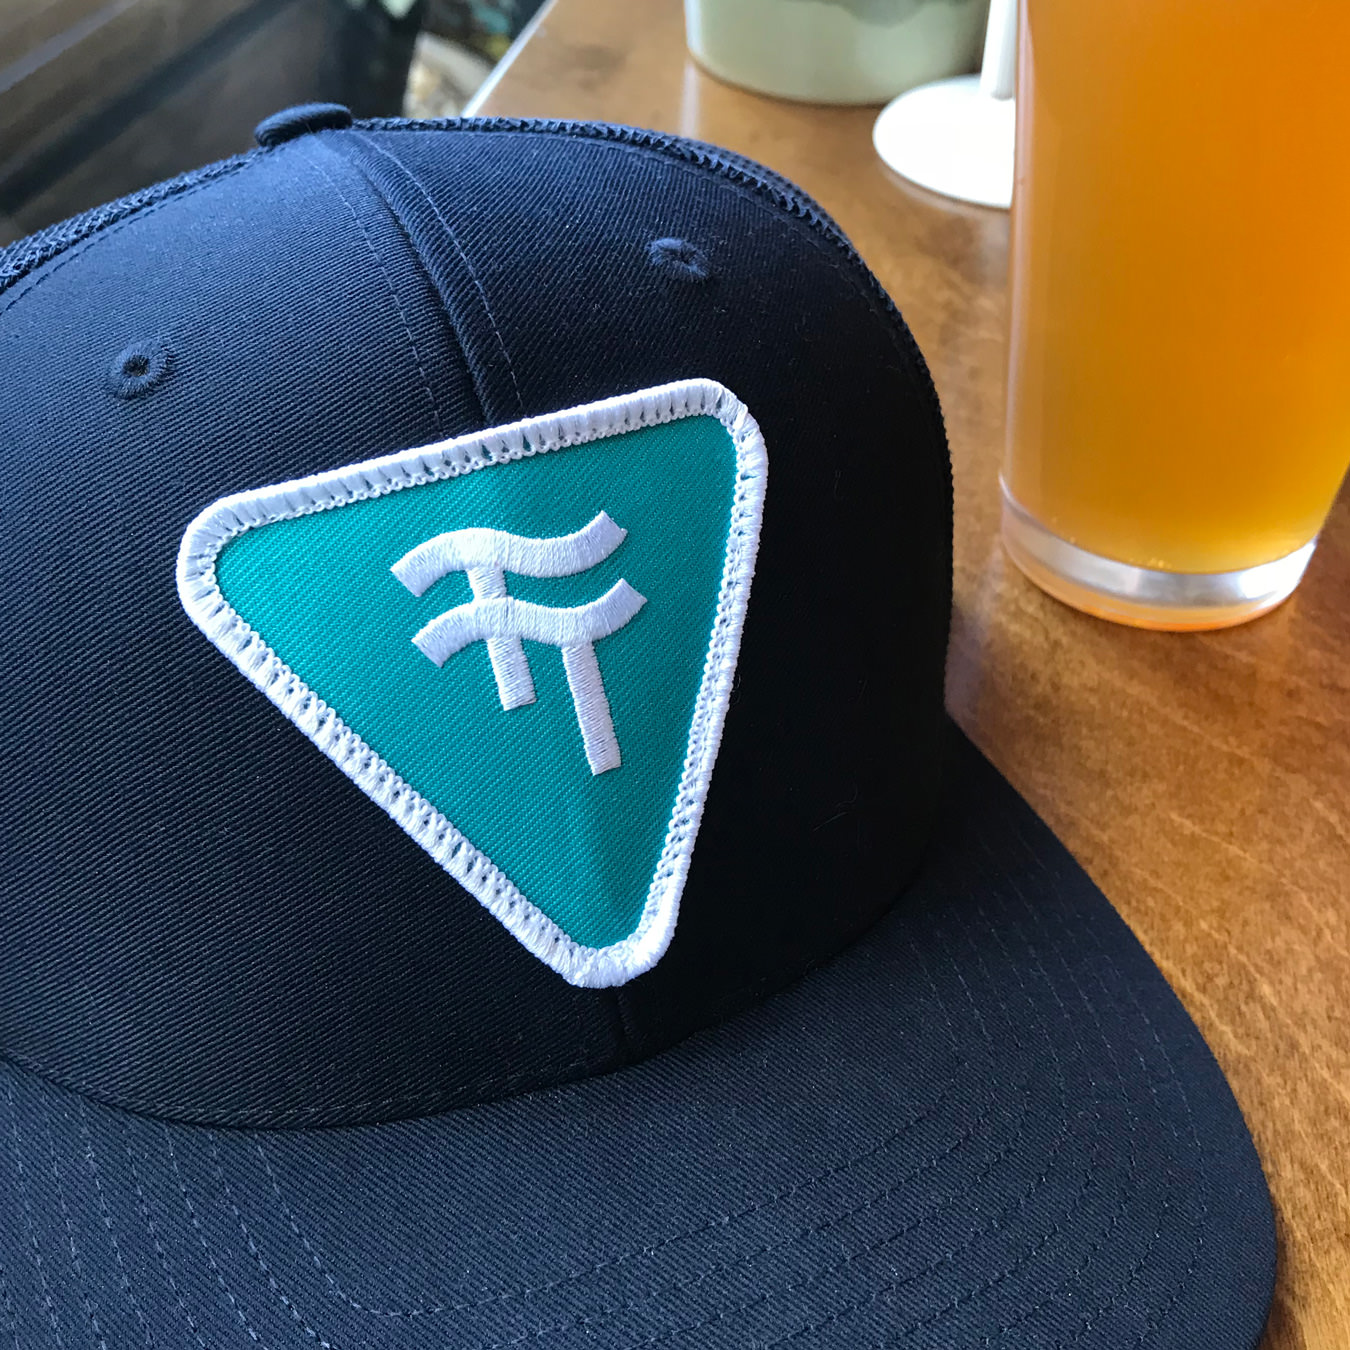 A photograph of a Two Tides Brewing Co. hat.